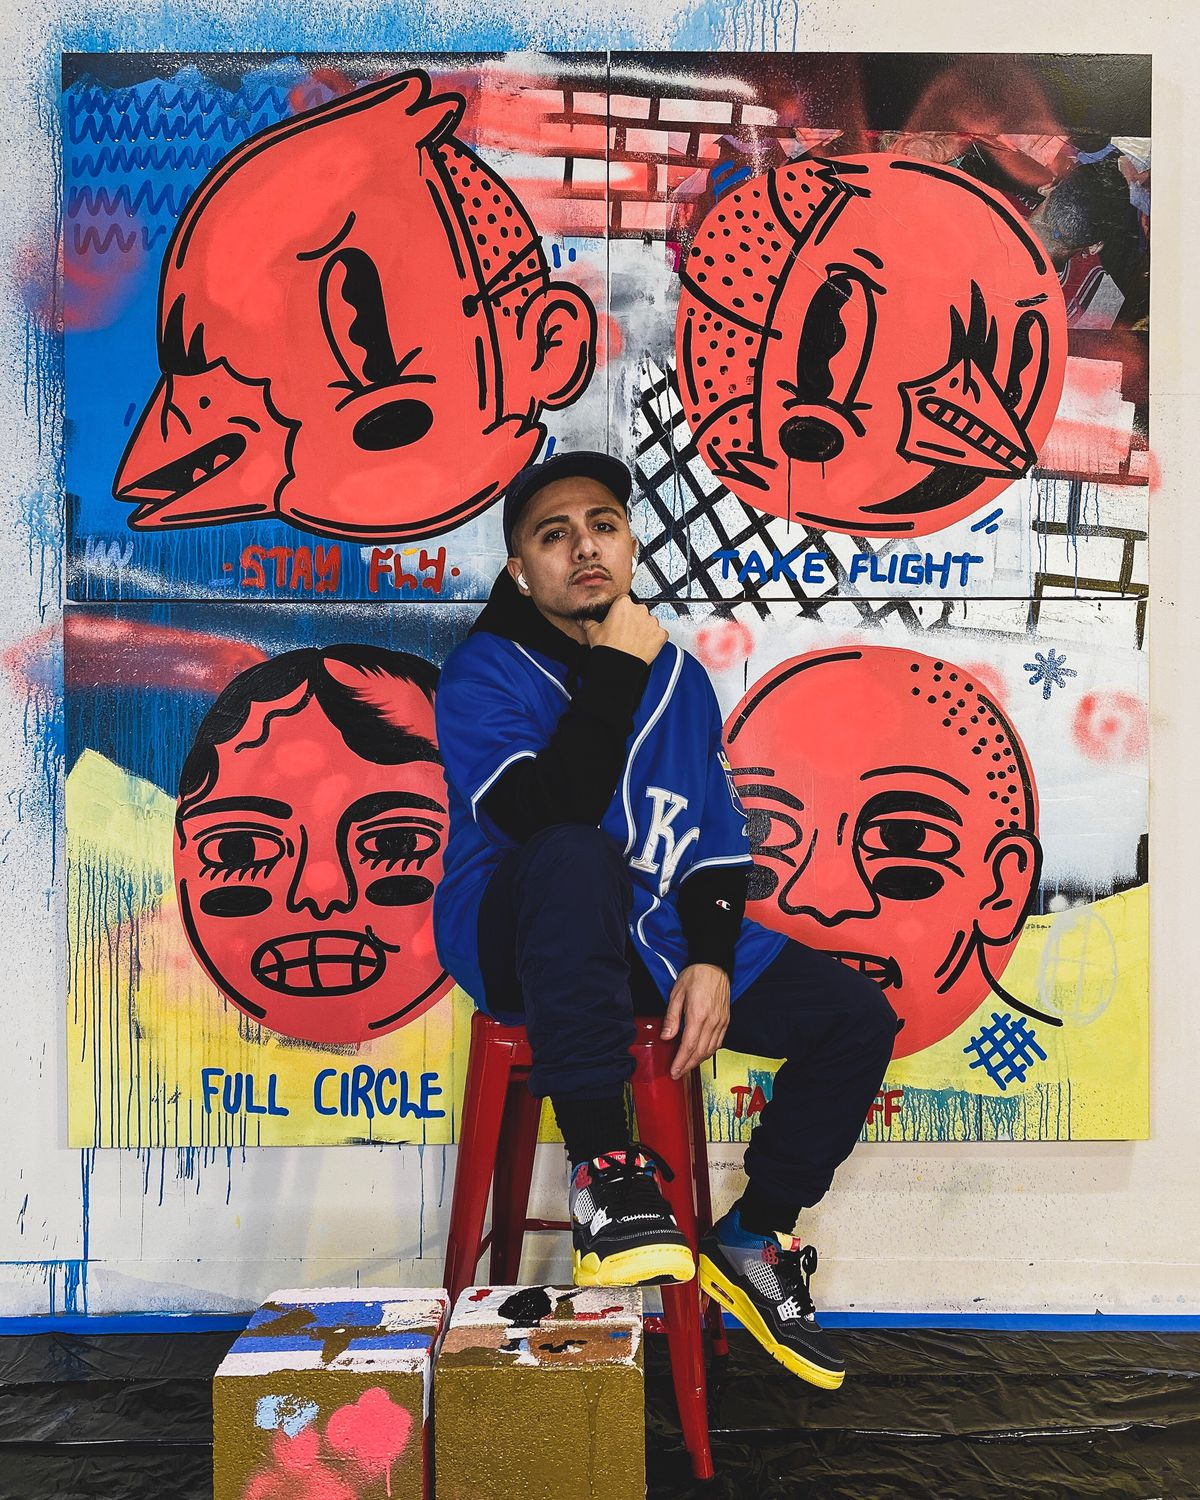 Joseph Perez — who uses the name Sentrock for his art — is a Chicago artist who's been doing murals since 2012. He operates out of a Pilsen studio.